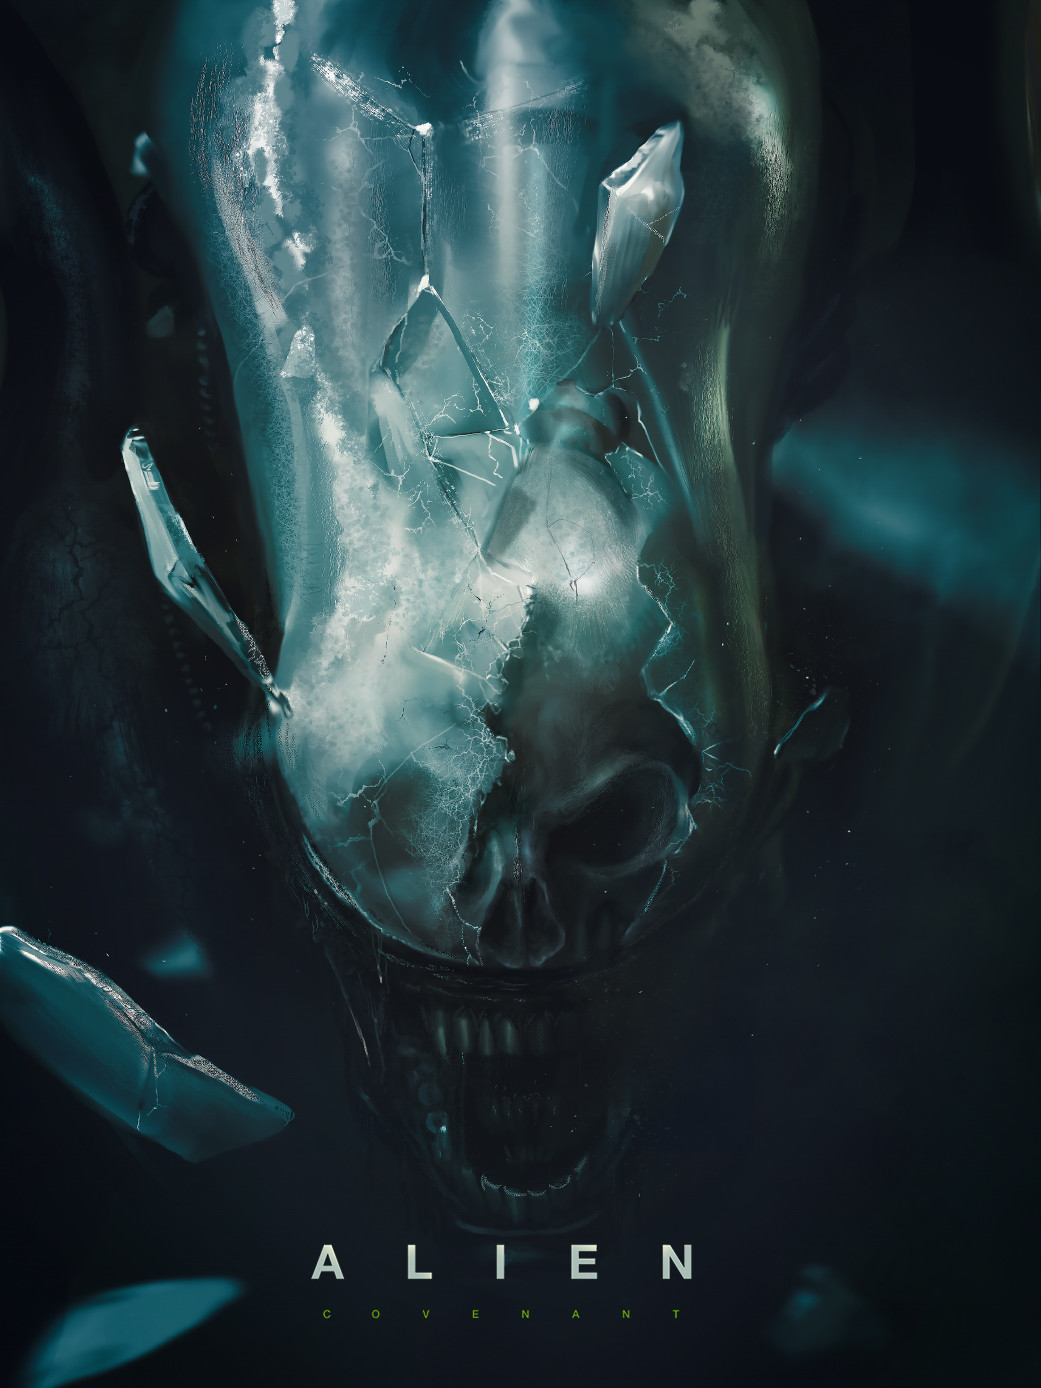 Alien Covenant Poster by M. Chang